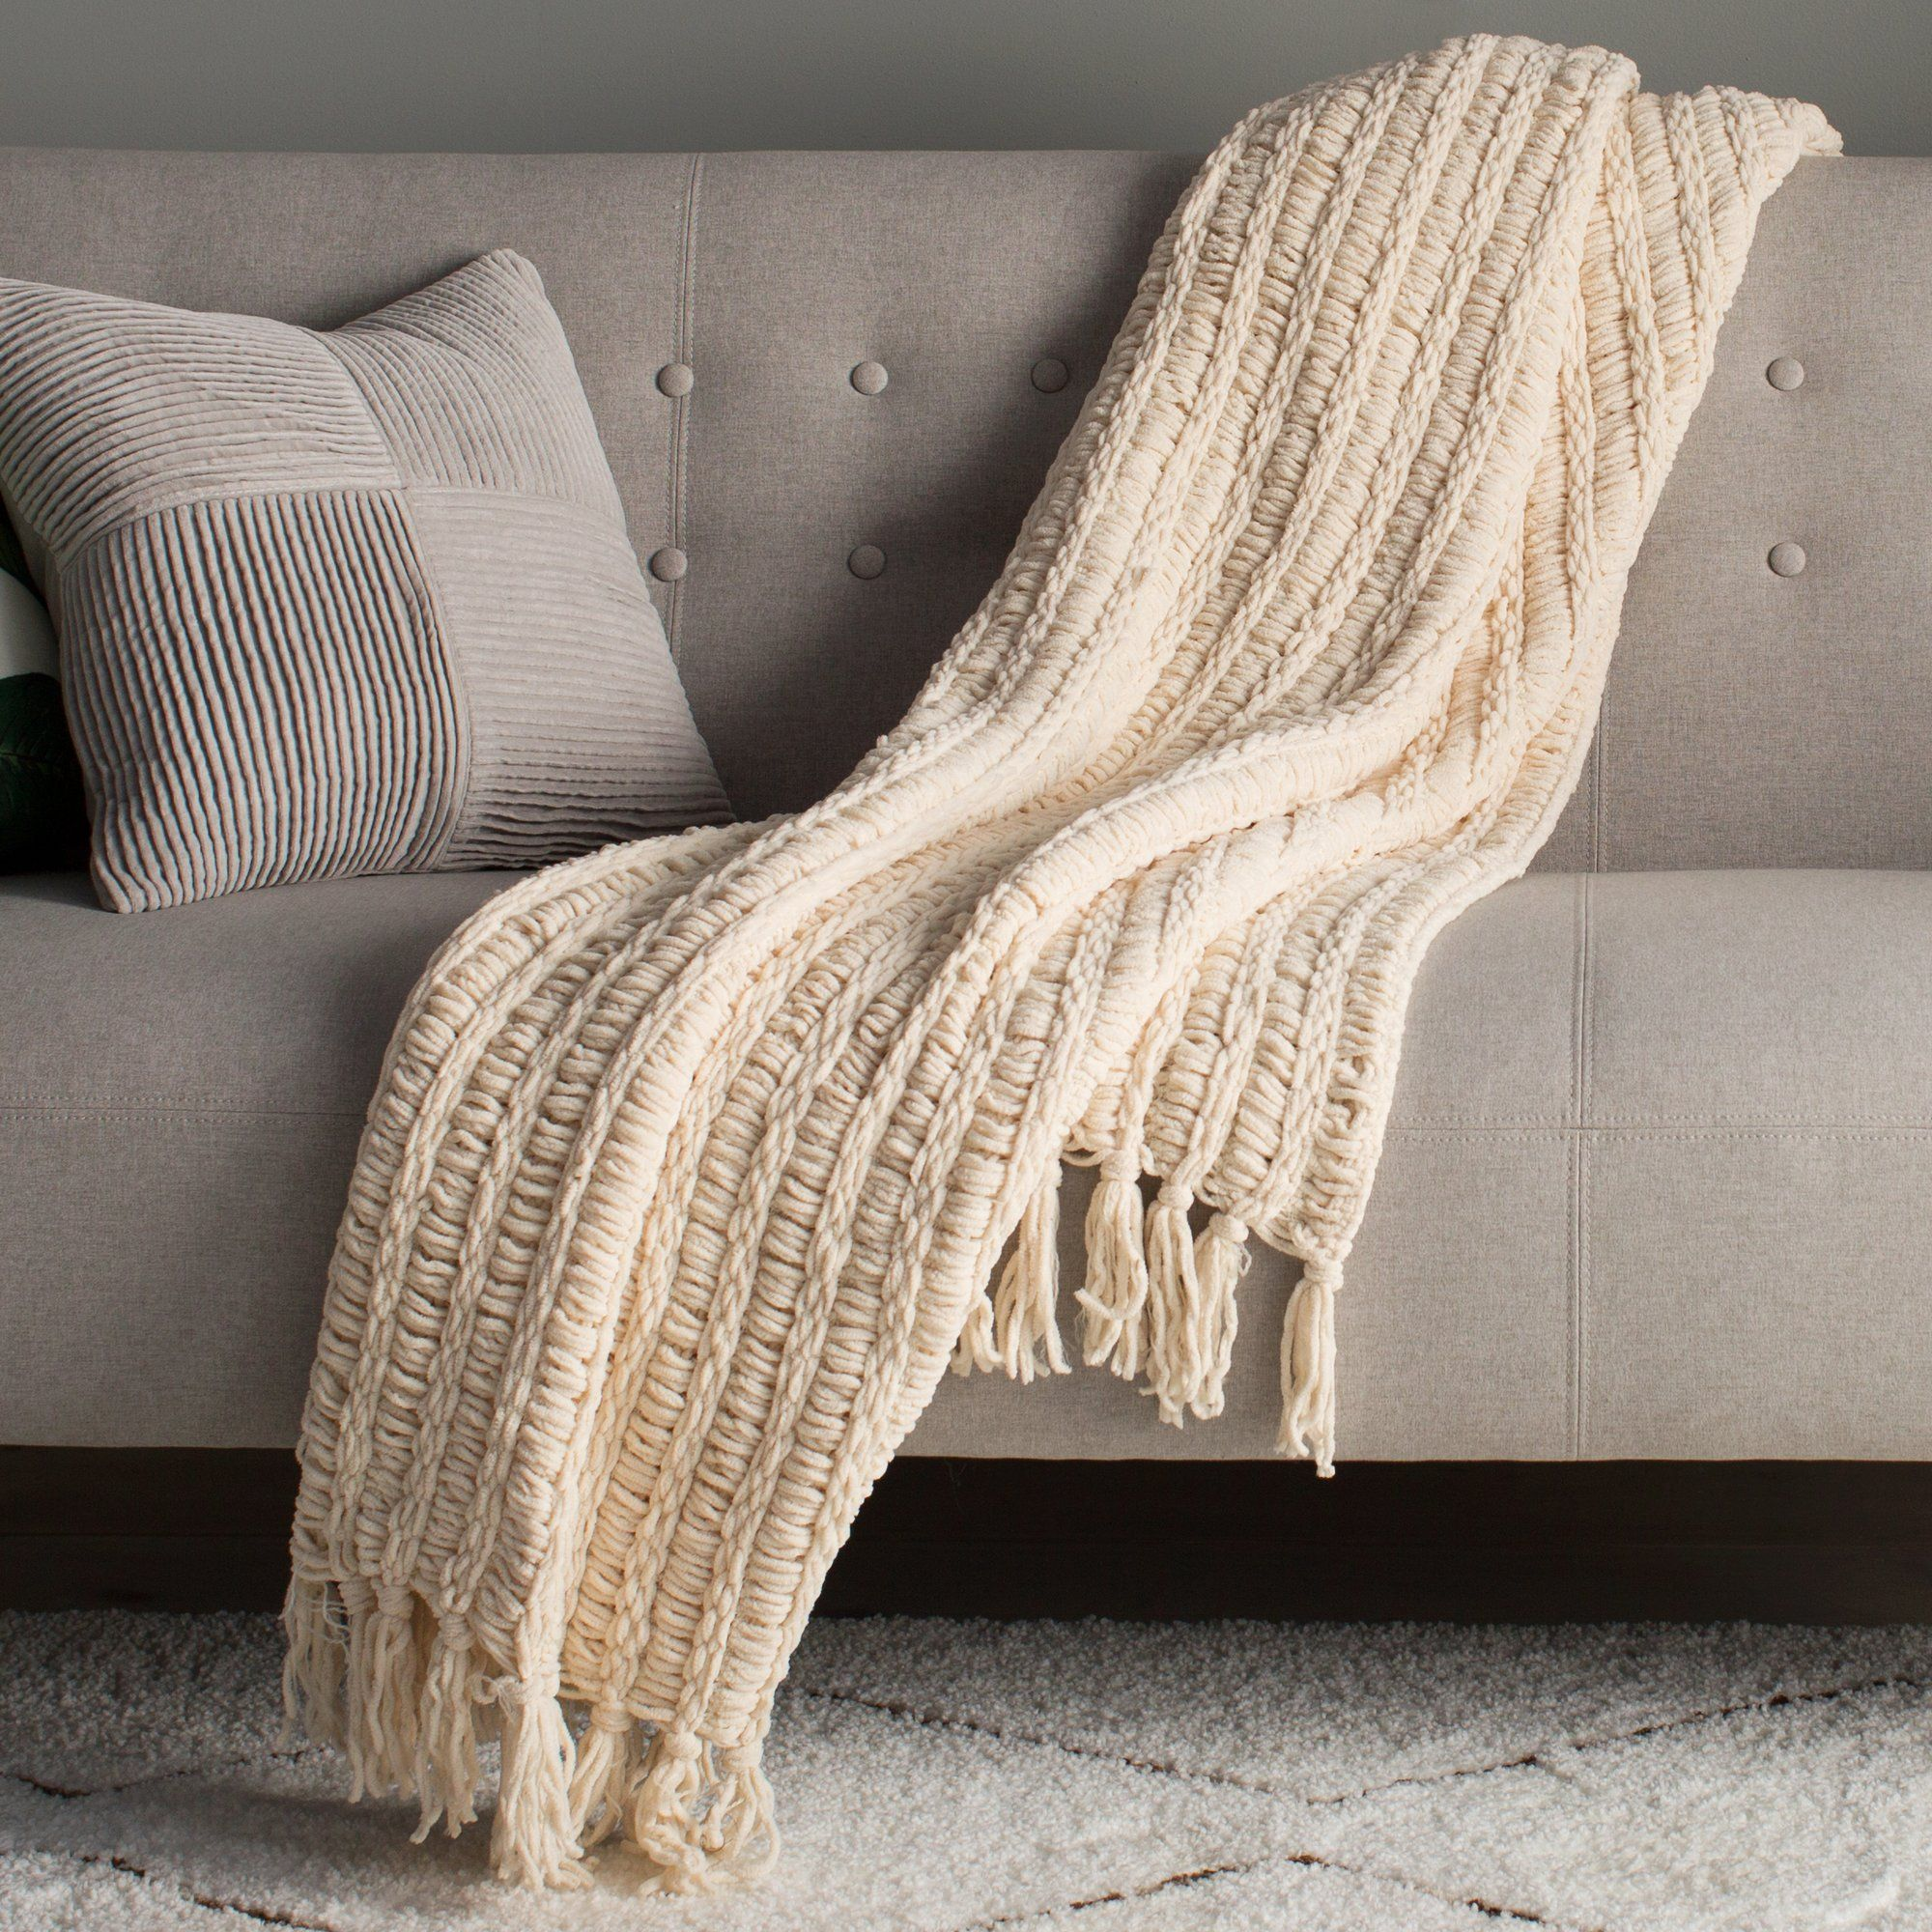 Throw Blankets Gorgeous Luxury Chenille Throw Blanket  440 Renovation  Pinterest  Blanket